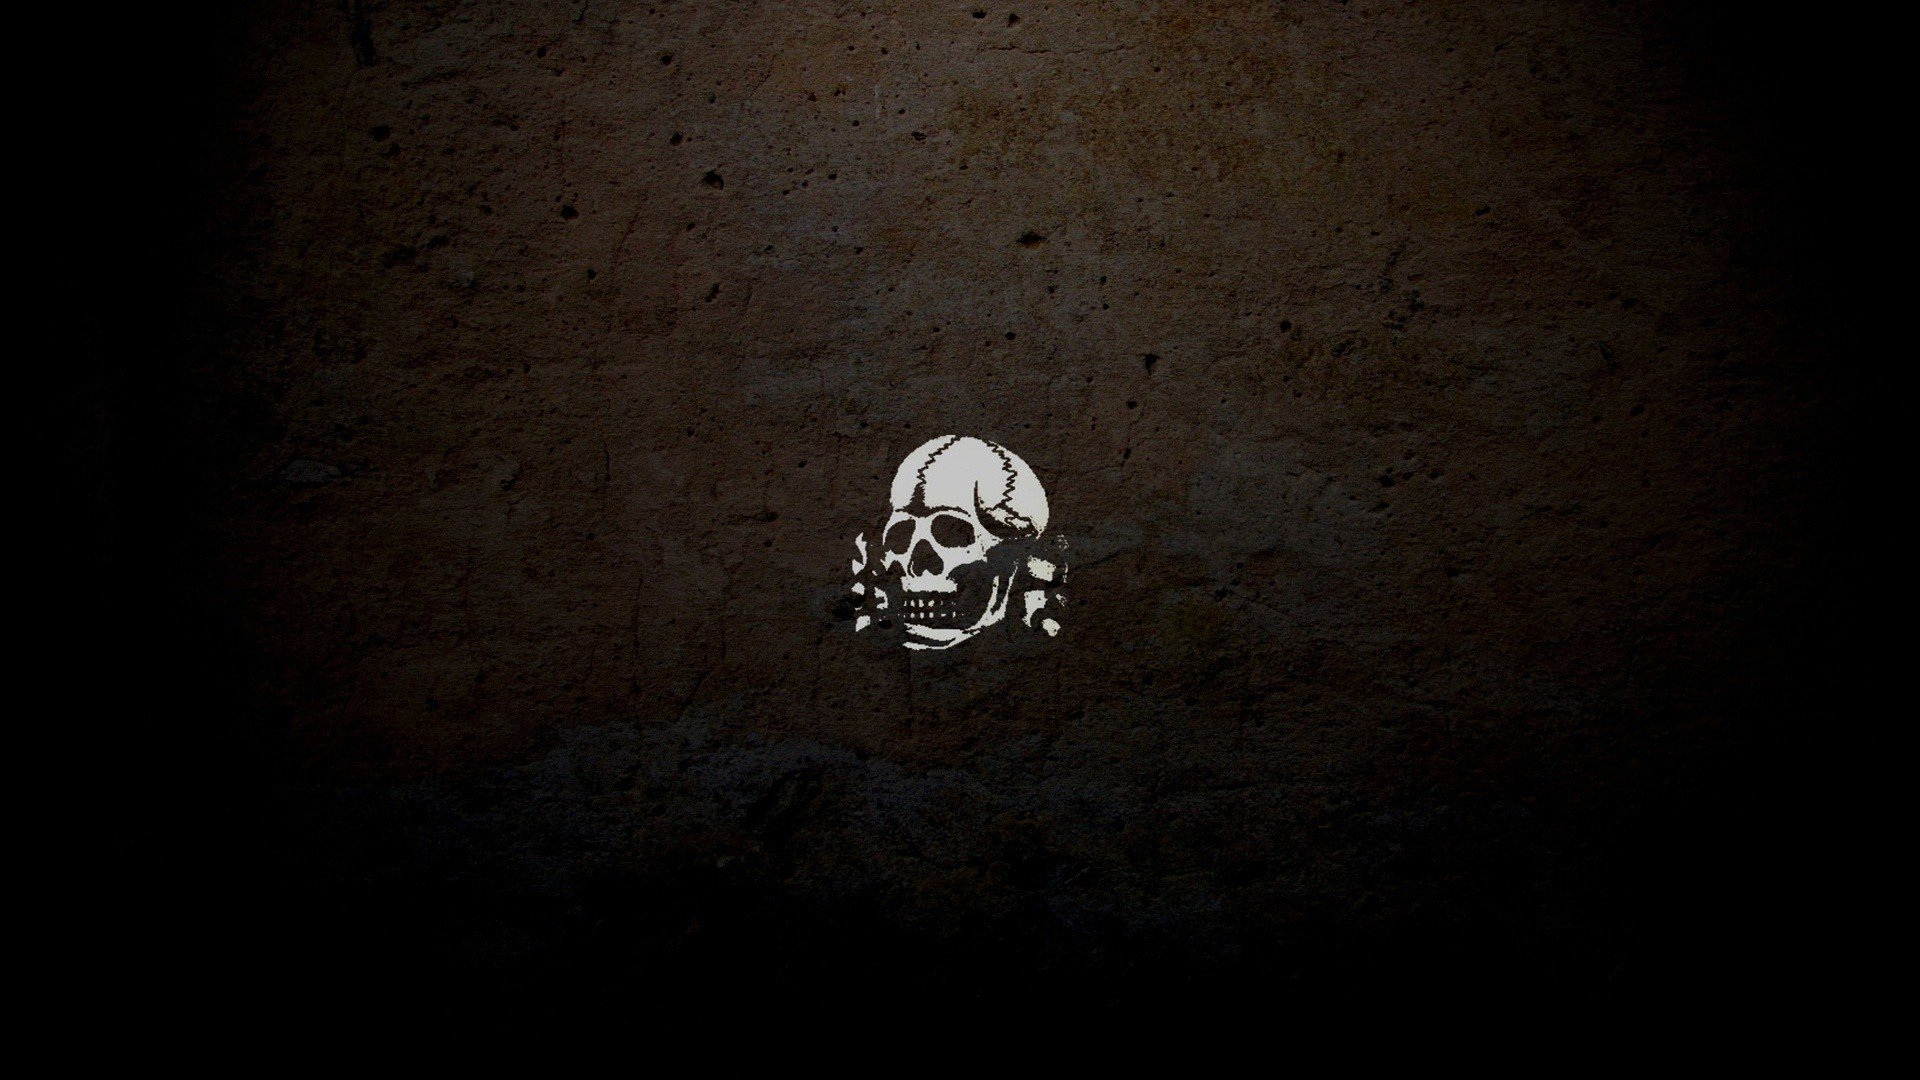 Skull and crossbones wallpaper | 1920x1080 | 286535 ...